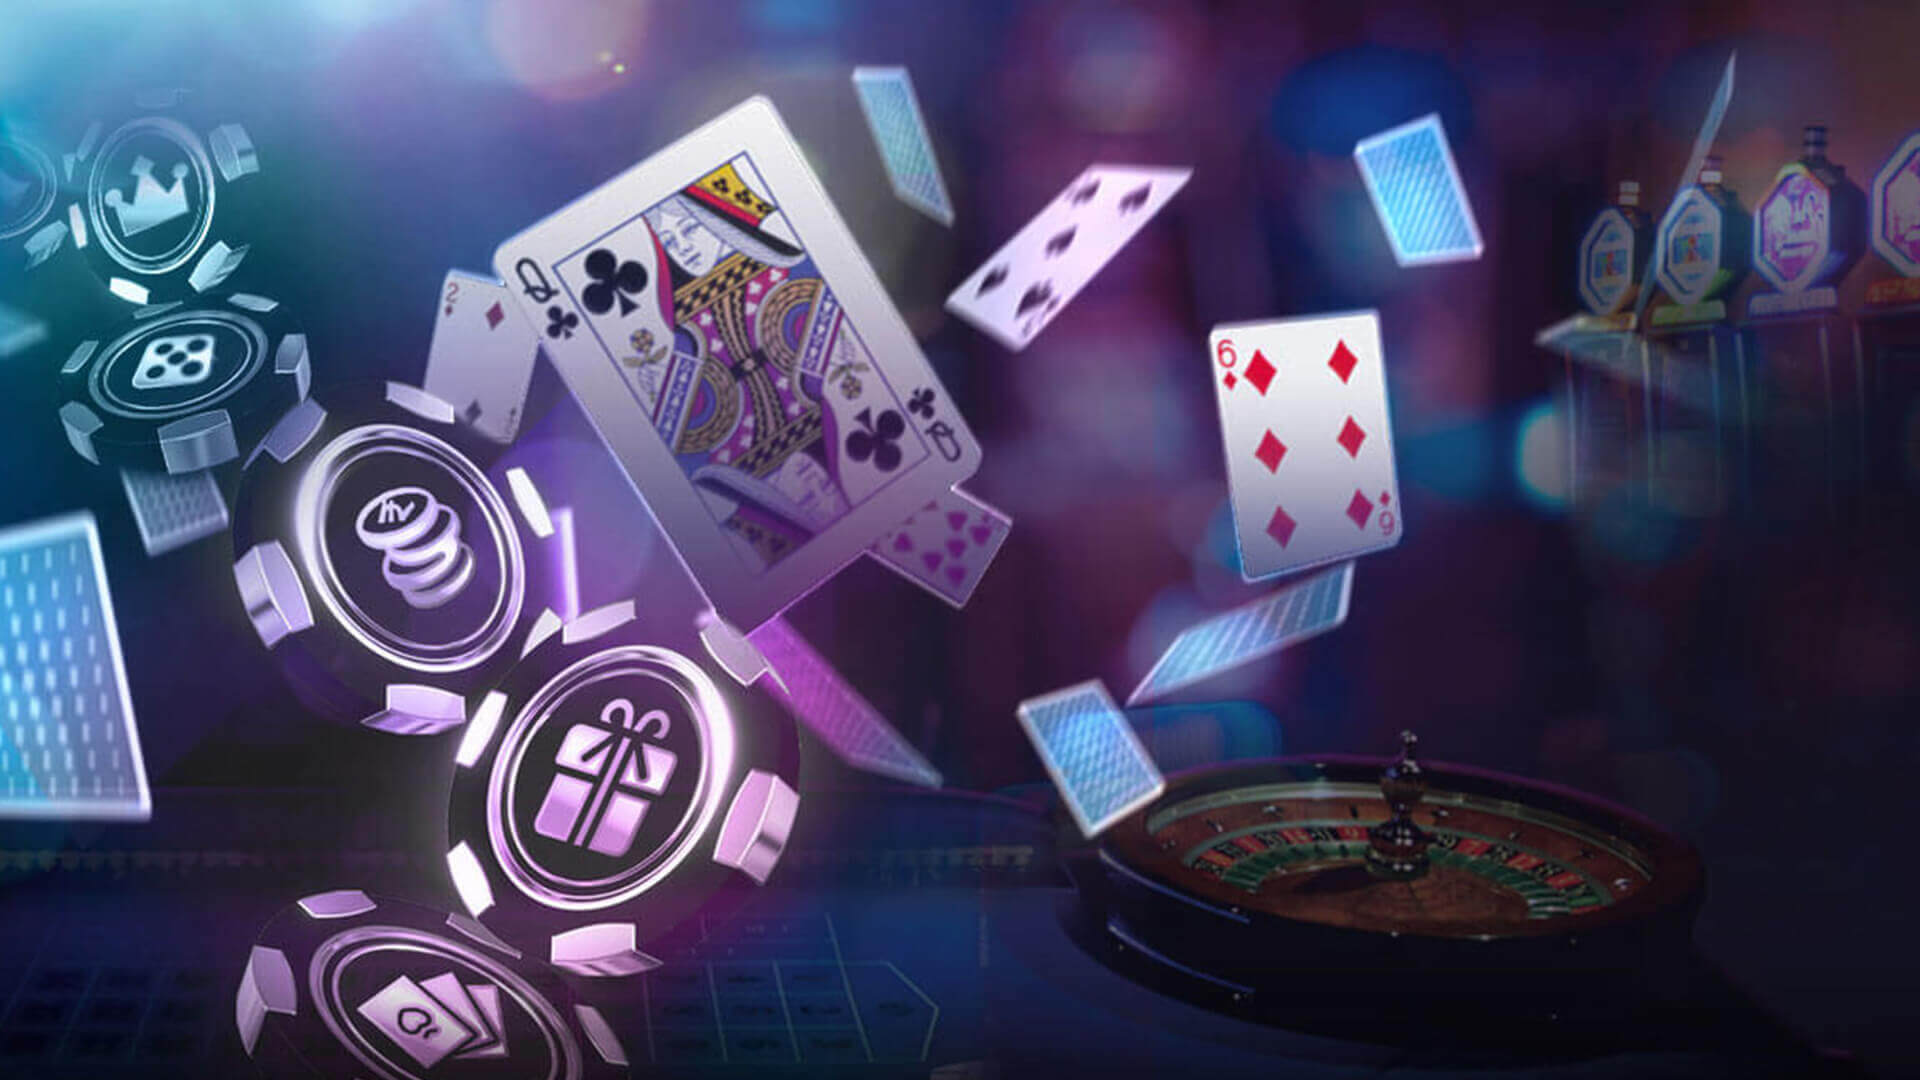 Some specialties and features regarding online casinos when compared with land